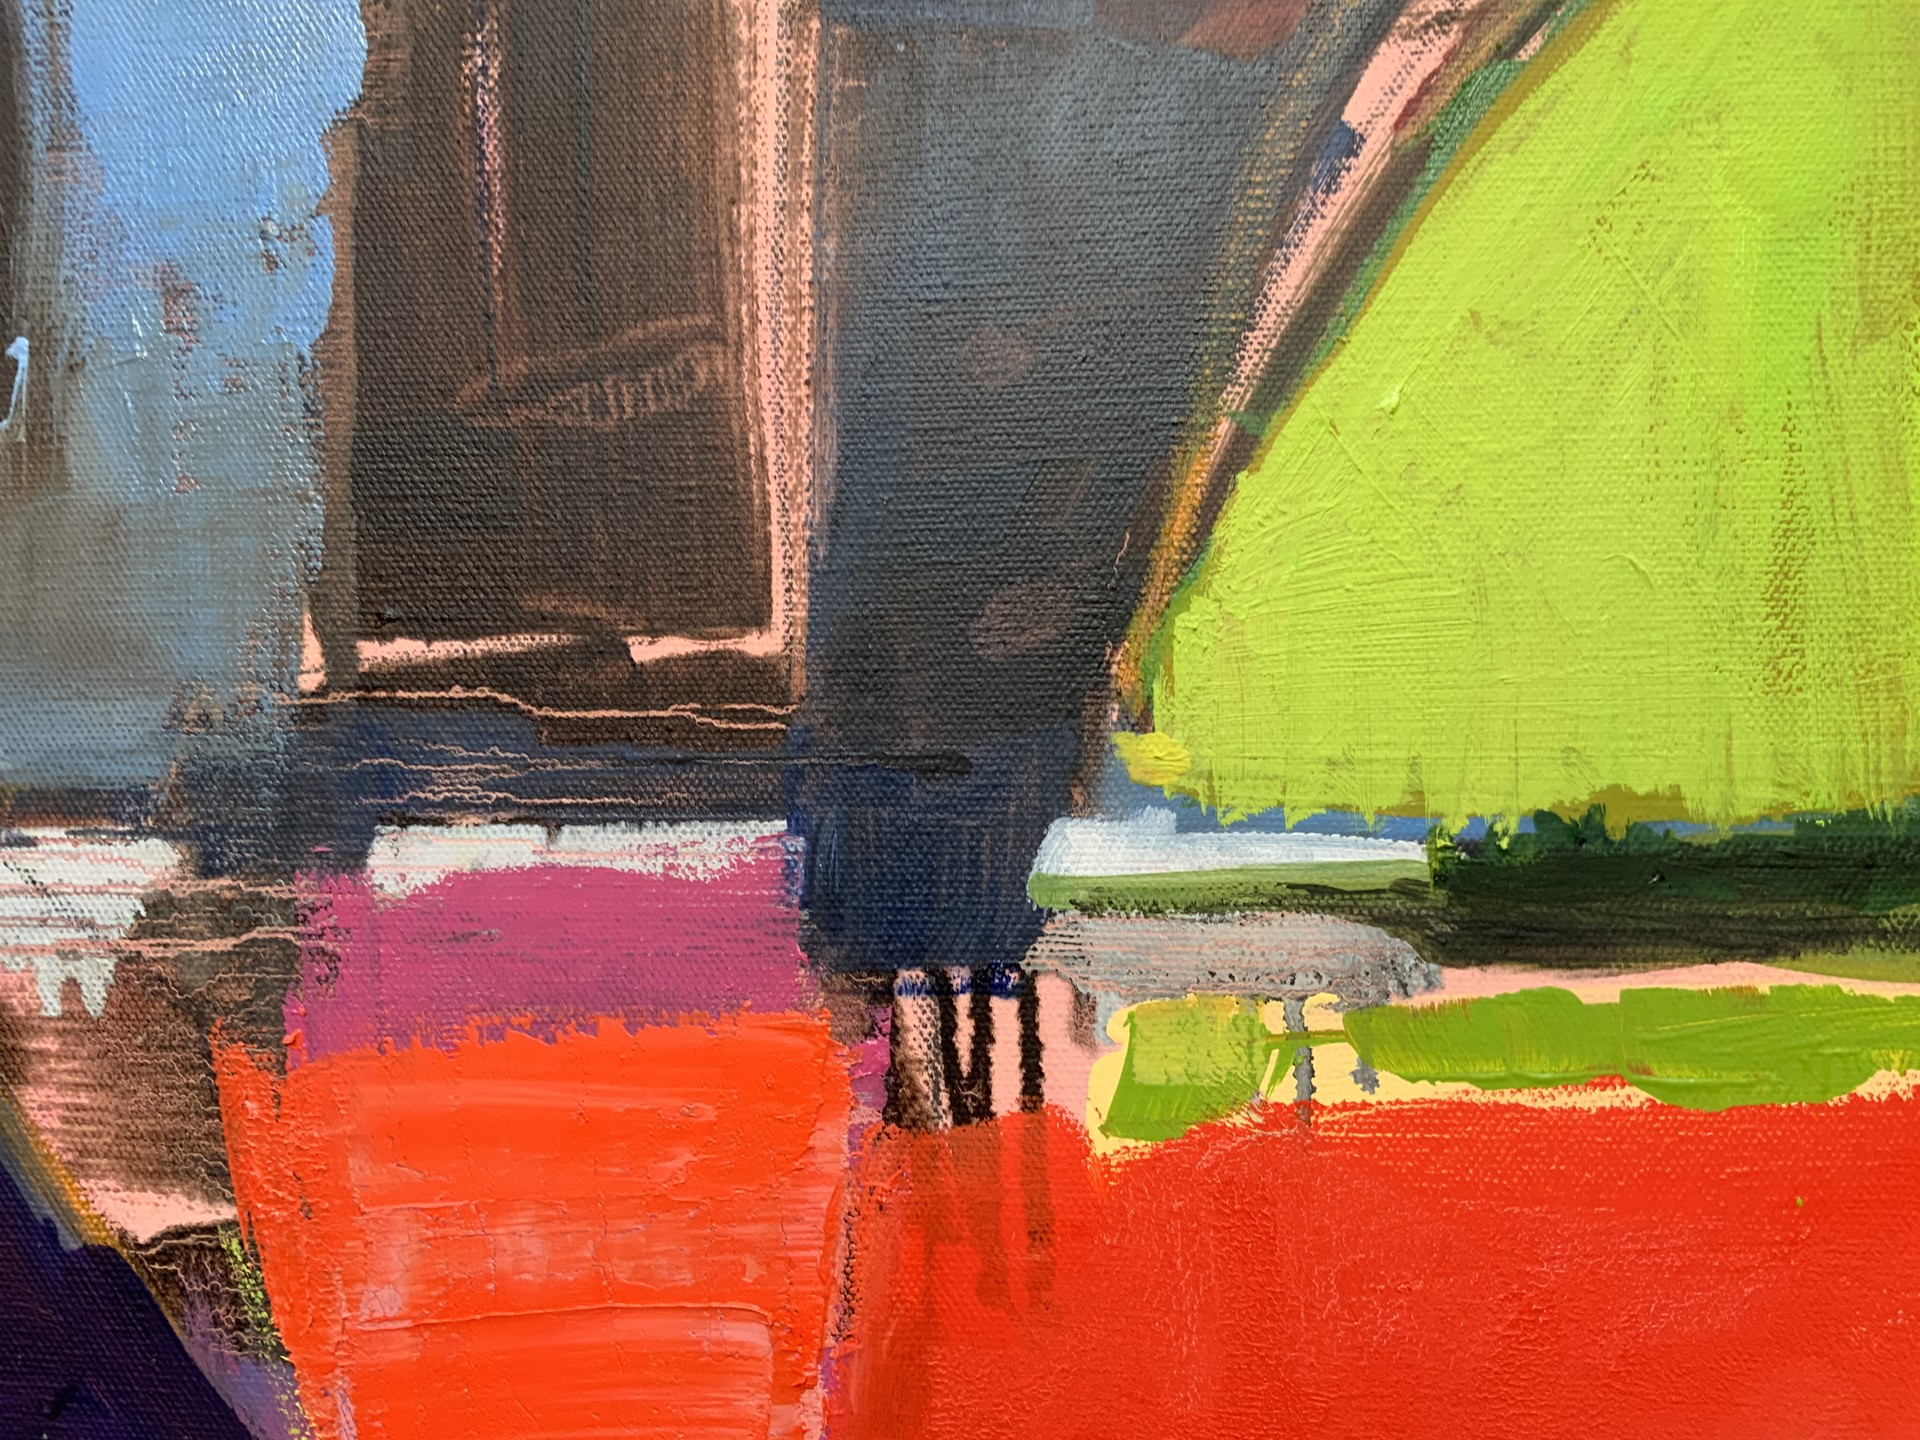 Abstract Landscape from the Air IV AA by Steven Page Prewitt